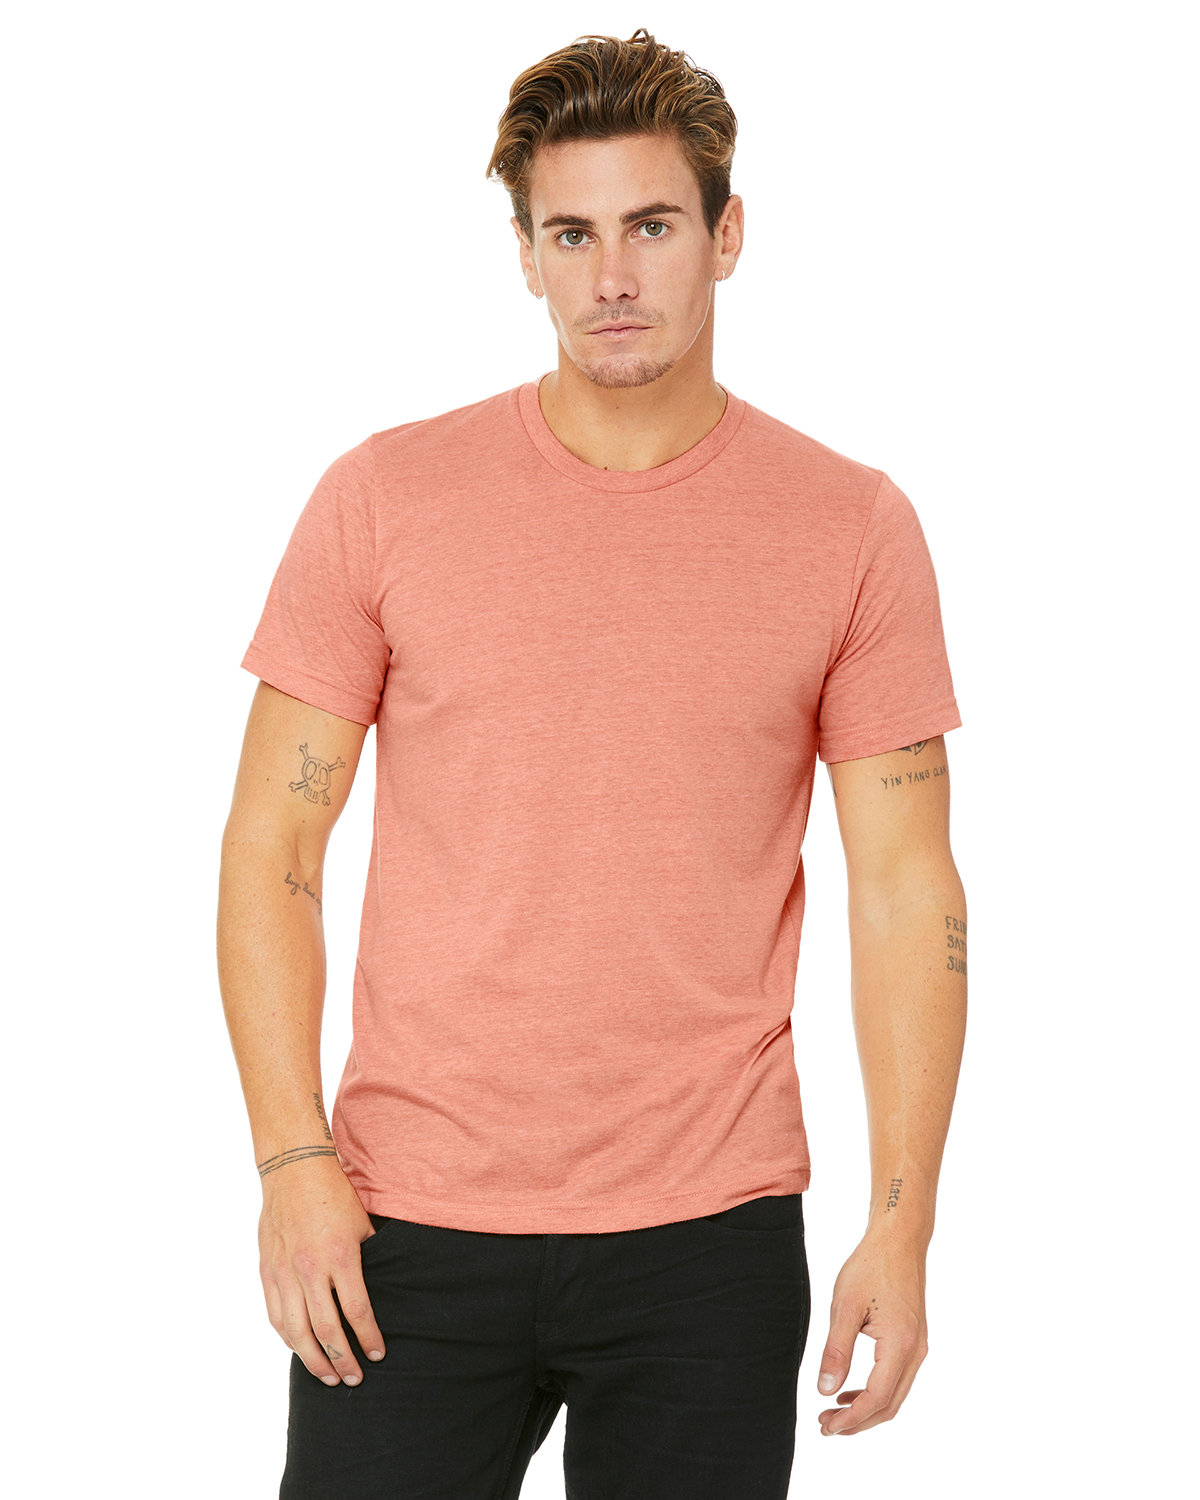 Bella + Canvas Unisex Heather CVC T-Shirt HEATHER SUNSET